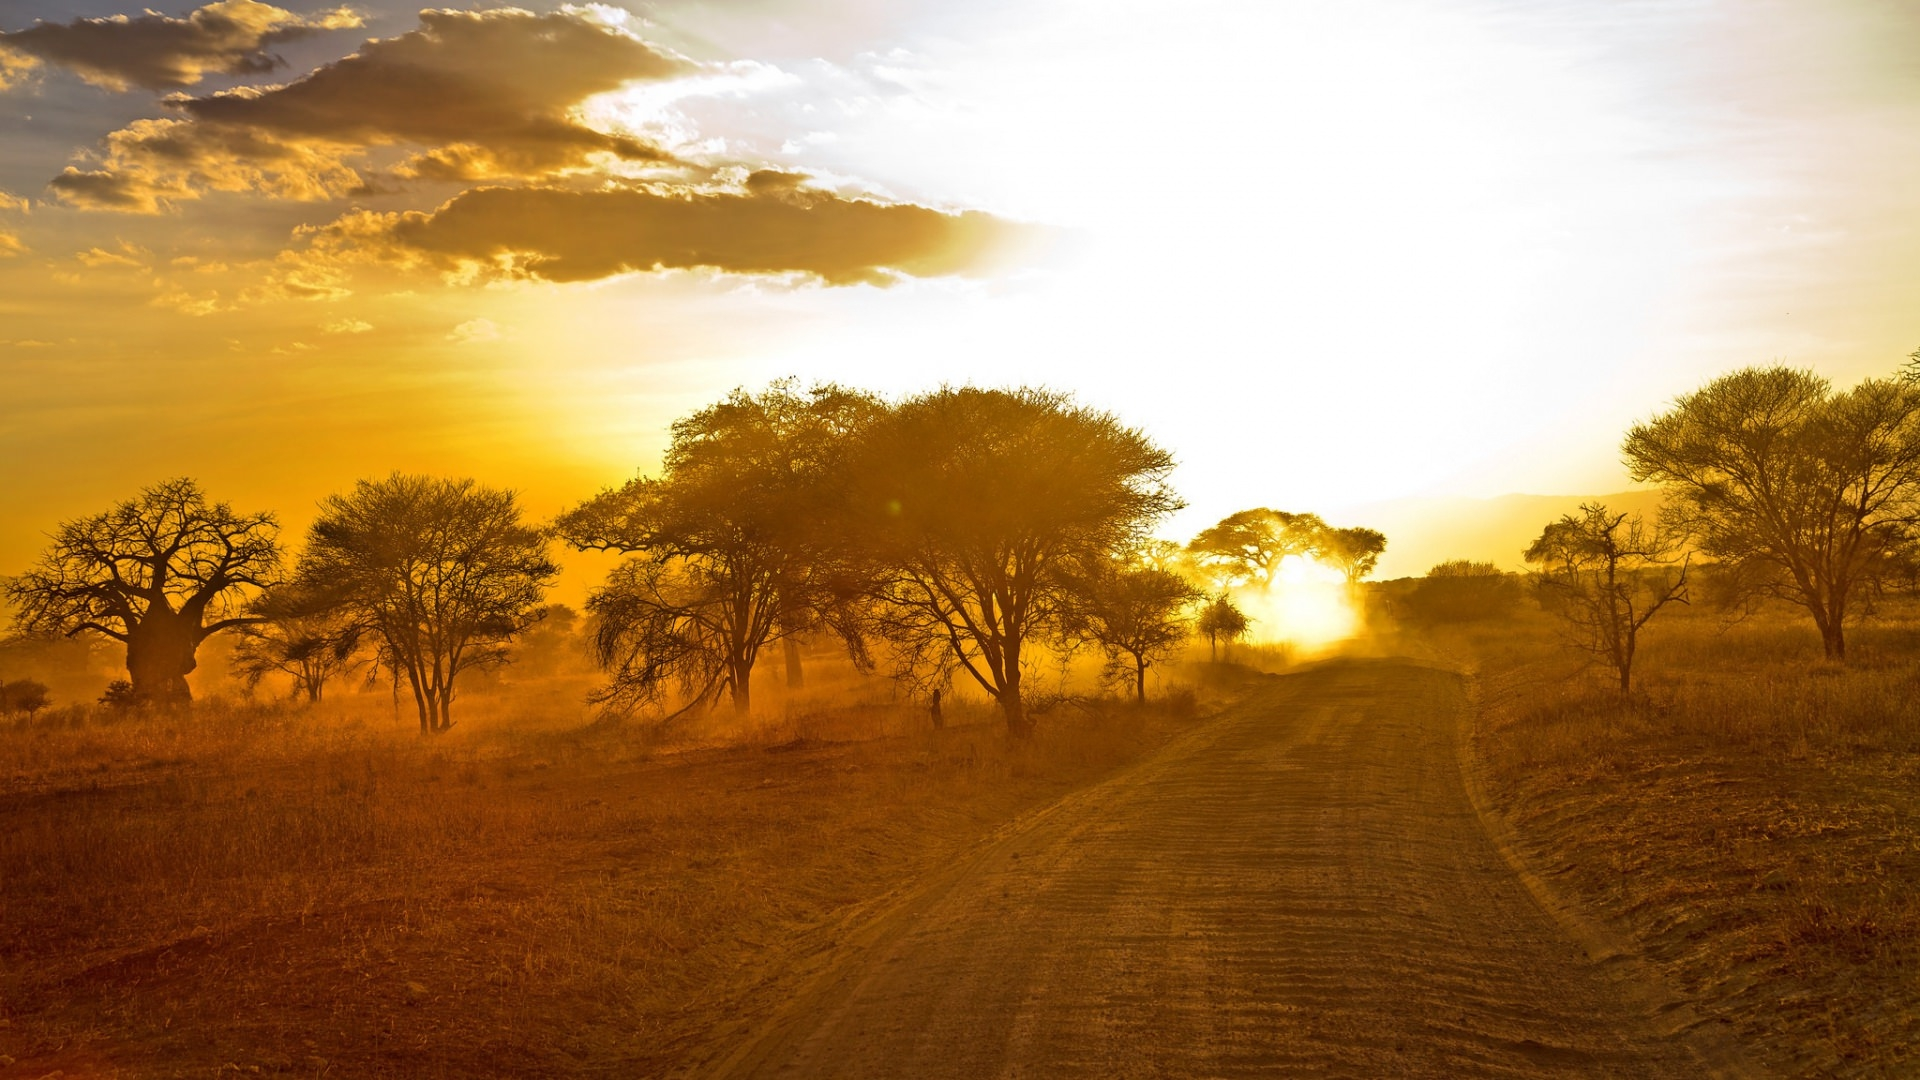 Sunrise in African Forest Wallpaper